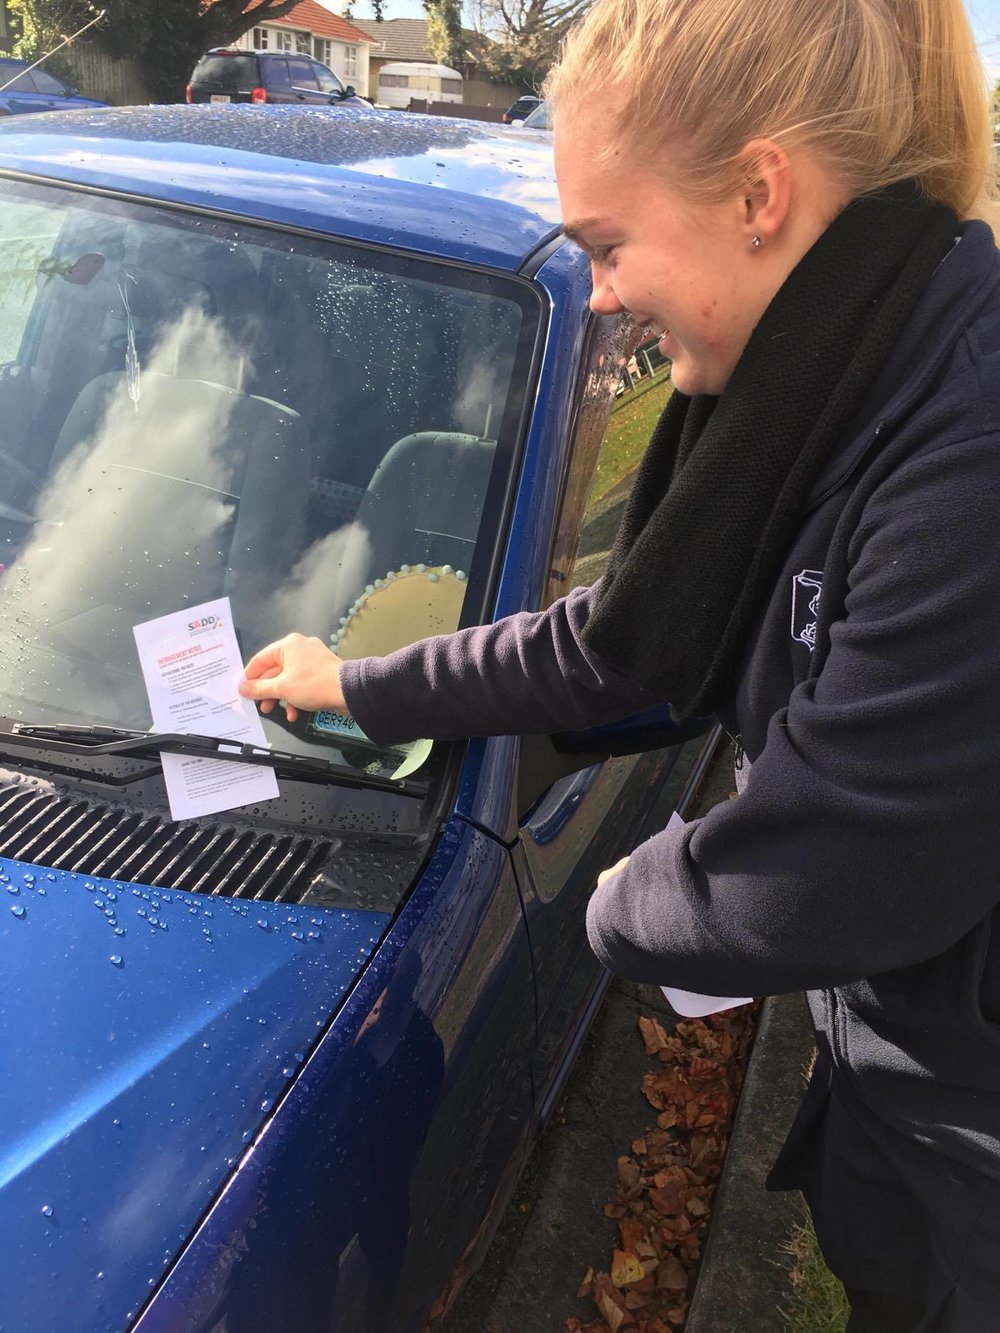 Tauranga Girls' College<br><small> Putting infringement notices on cars</small>